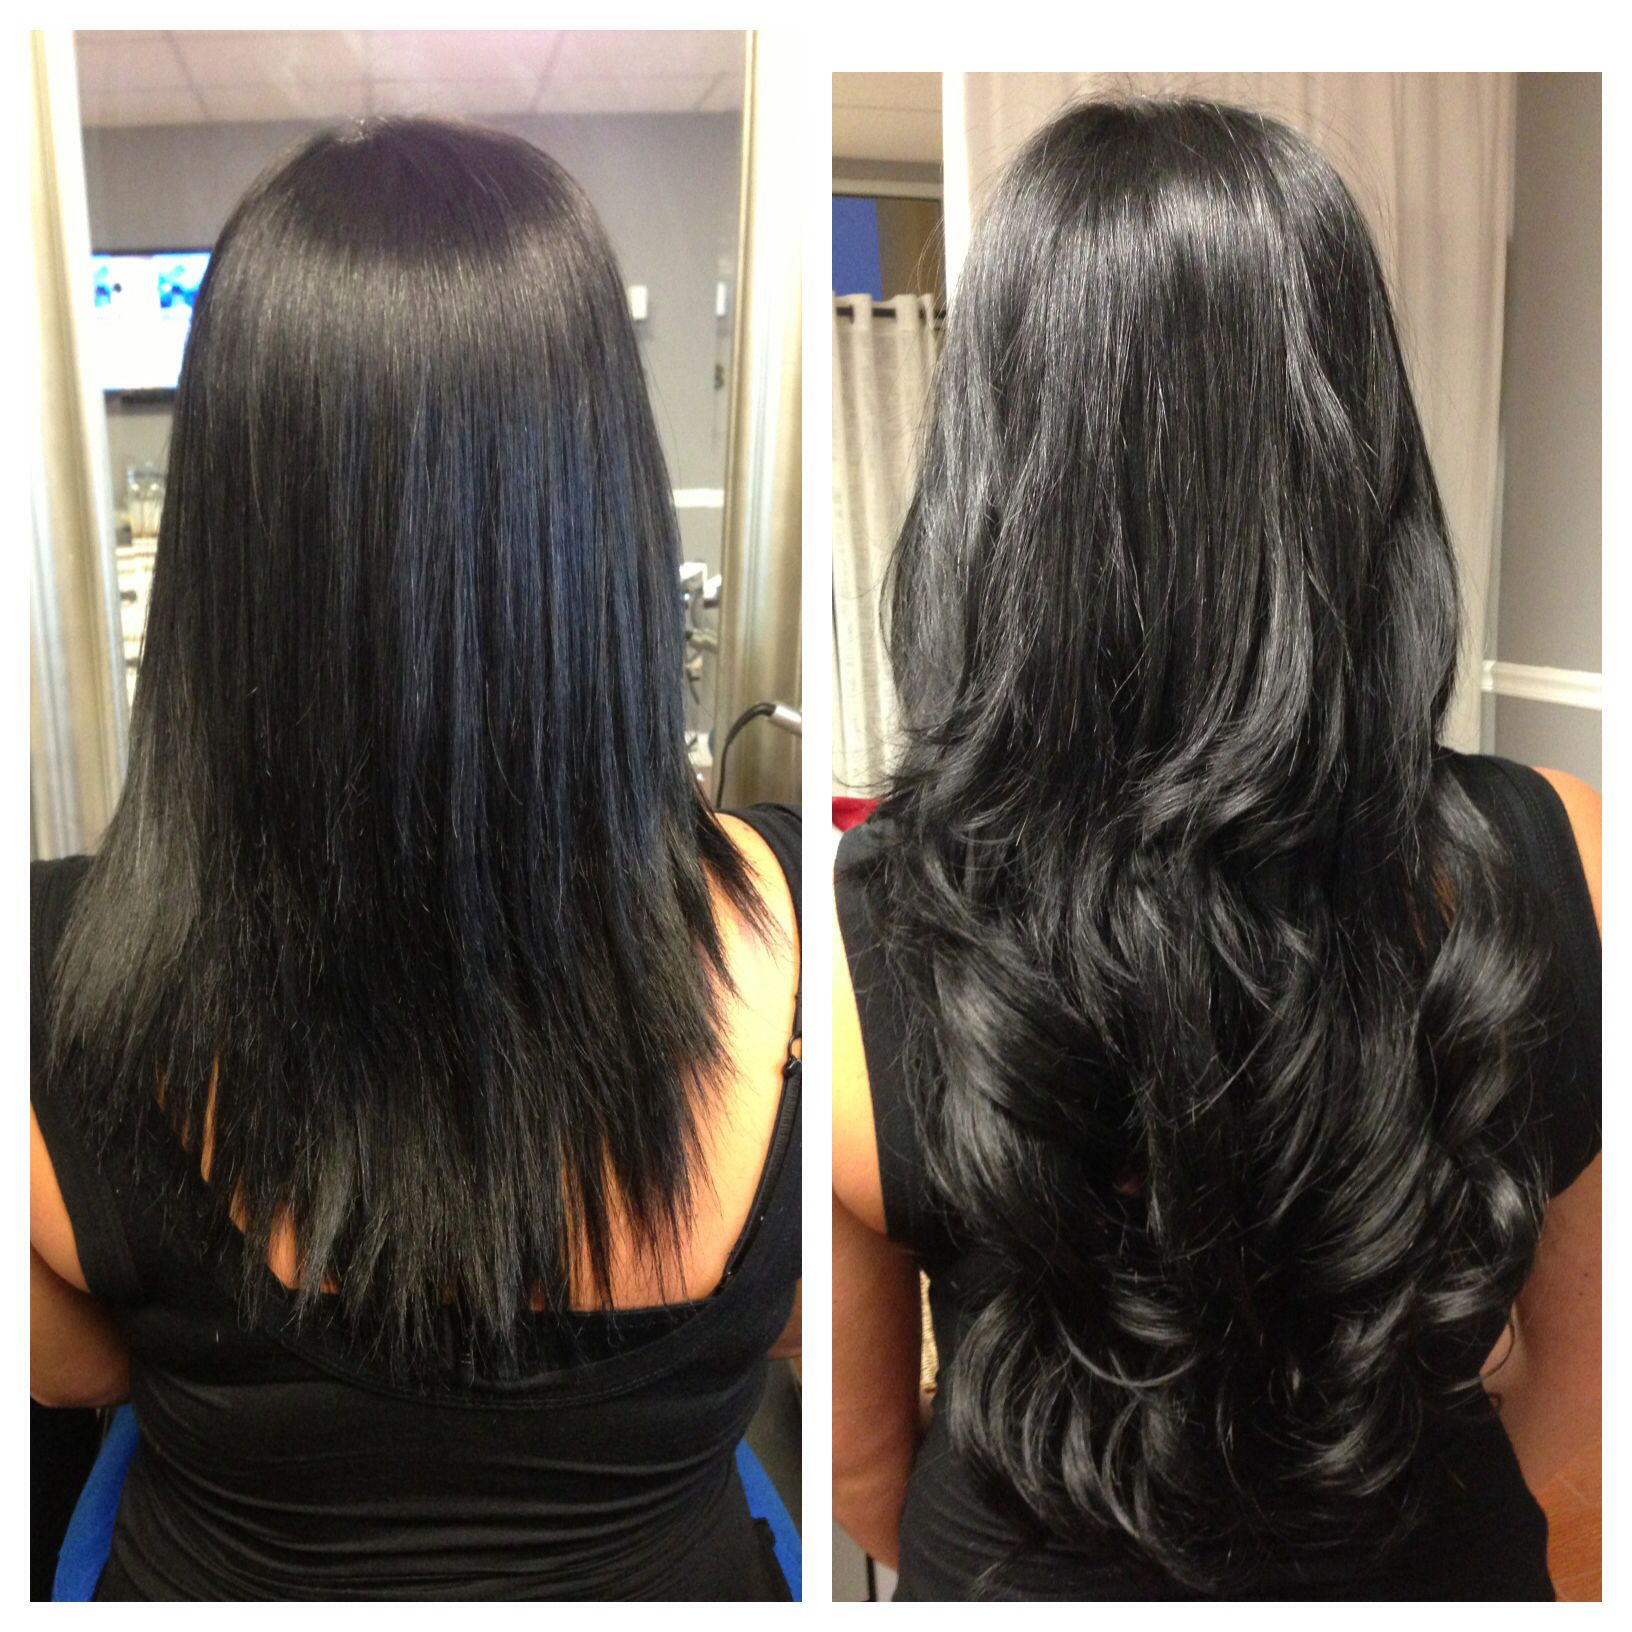 Short to long hot heads hair extensions used lmg beauty short to long hot heads hair extensions used pmusecretfo Images